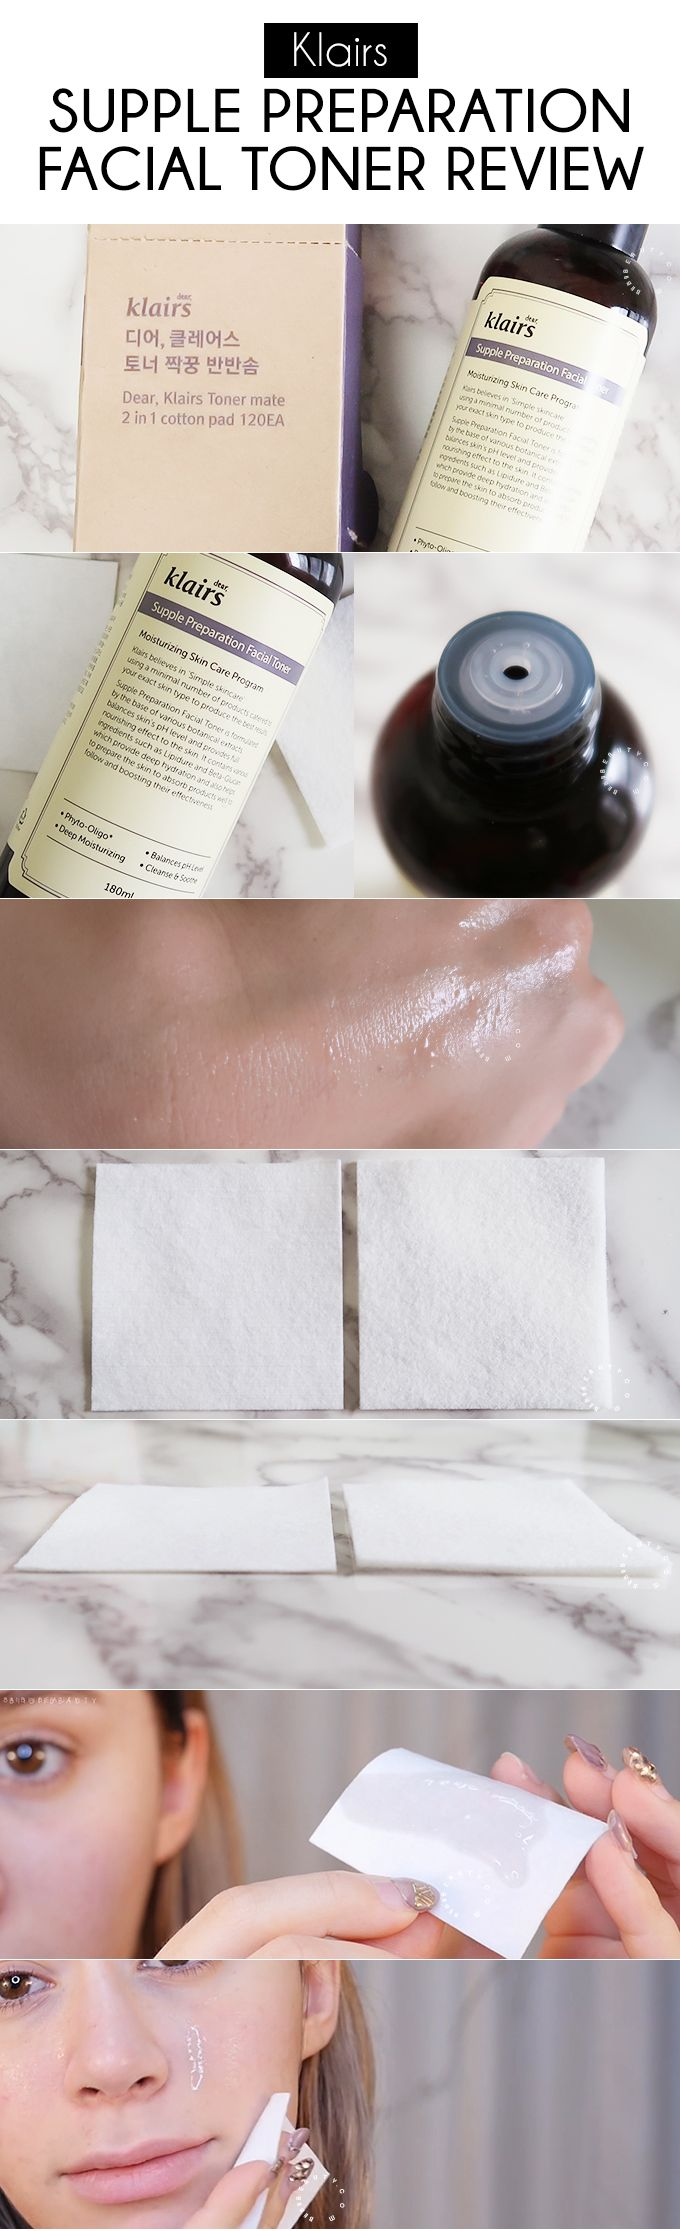 An in-depth Klairs Supple Preparation Facial Toner Review. Why this toner is ideal for all skin types, gentle and effective and shockingly amazing for skin! - http://www.wishtrendglam.com/klairs-supple-preparation-facial-toner-review/